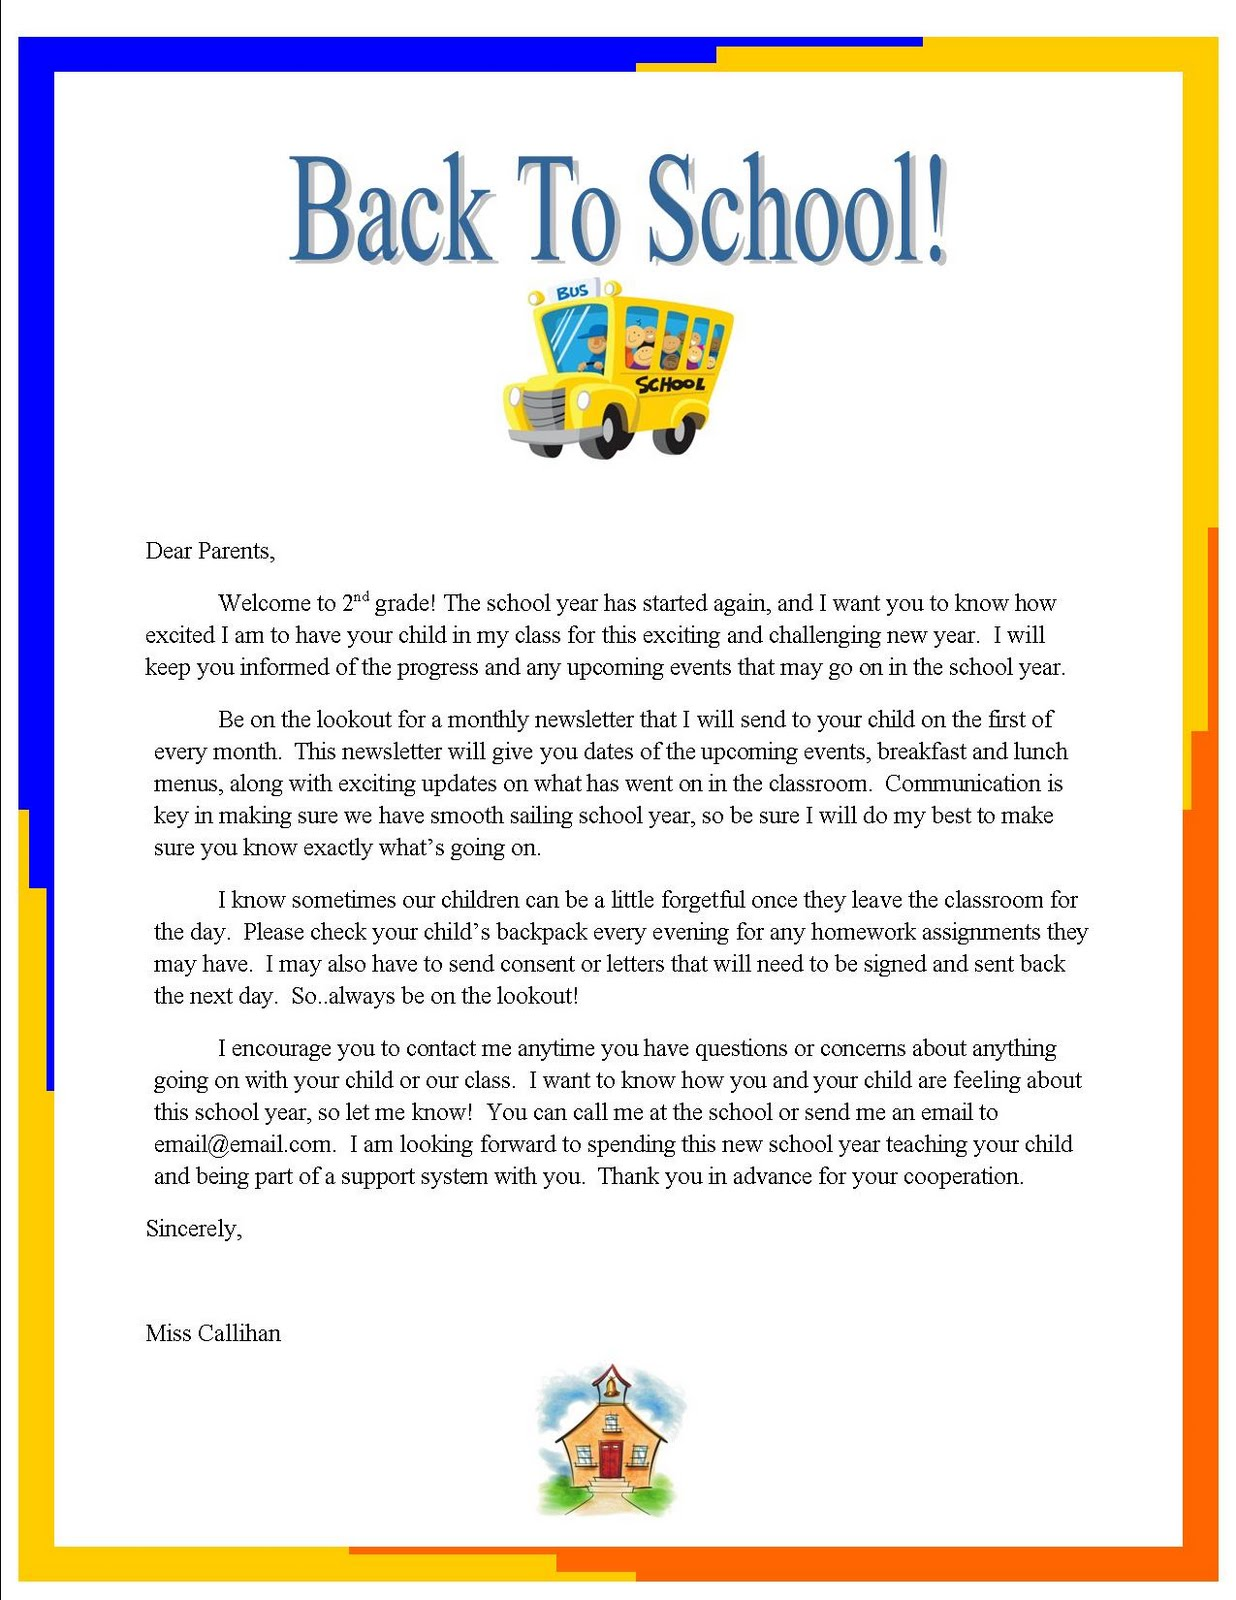 """Emily's Blog: Week 3: """"Back to School"""" letter to Parents"""